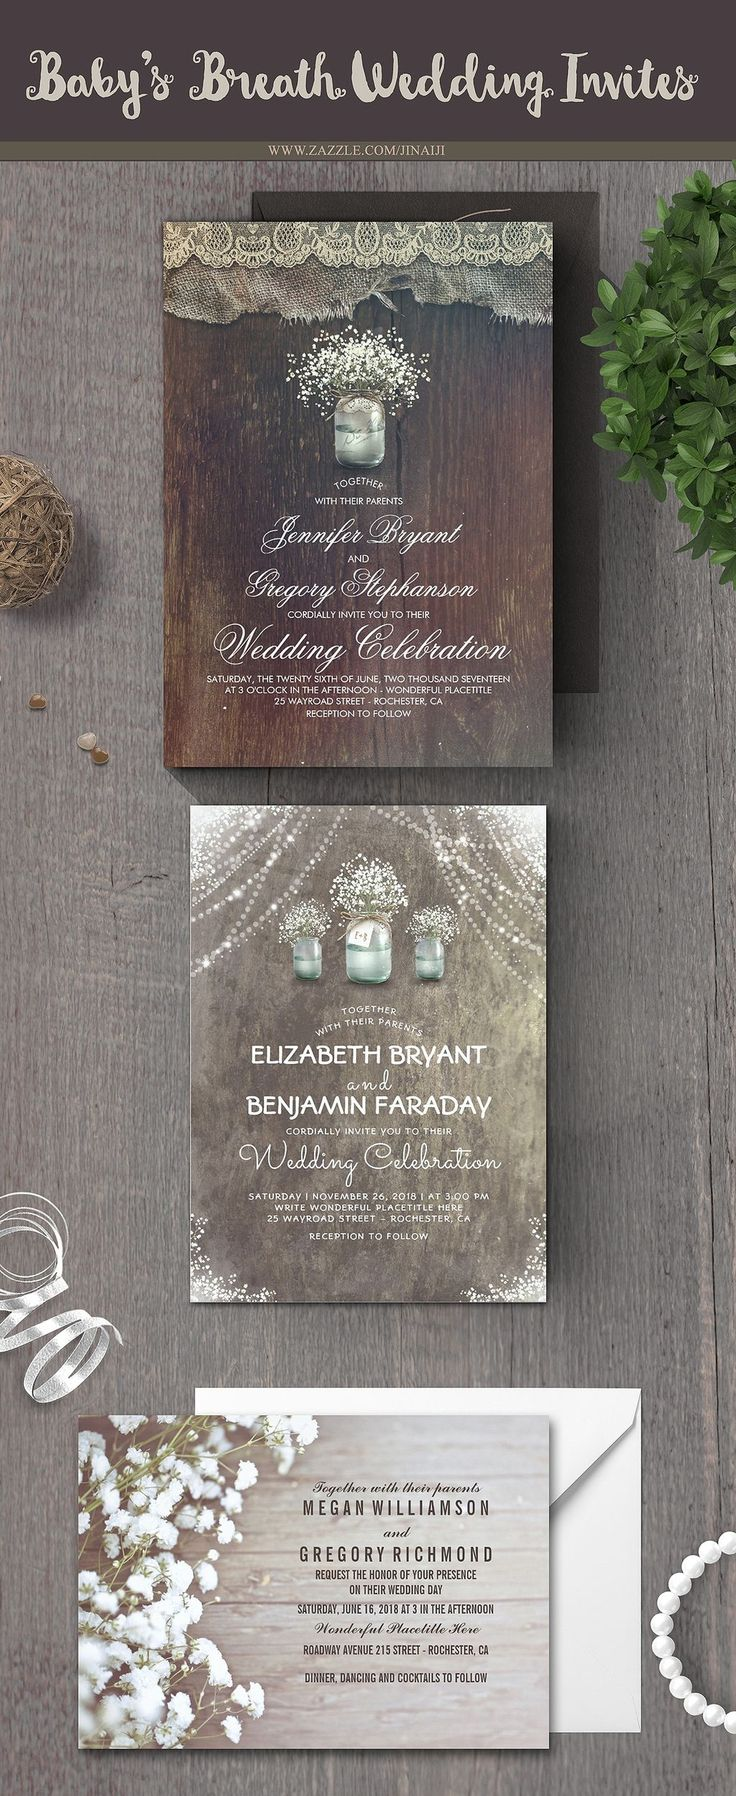 Wedding decorations at church november 2018  best Wedding Invitations images on Pinterest  Forest wedding